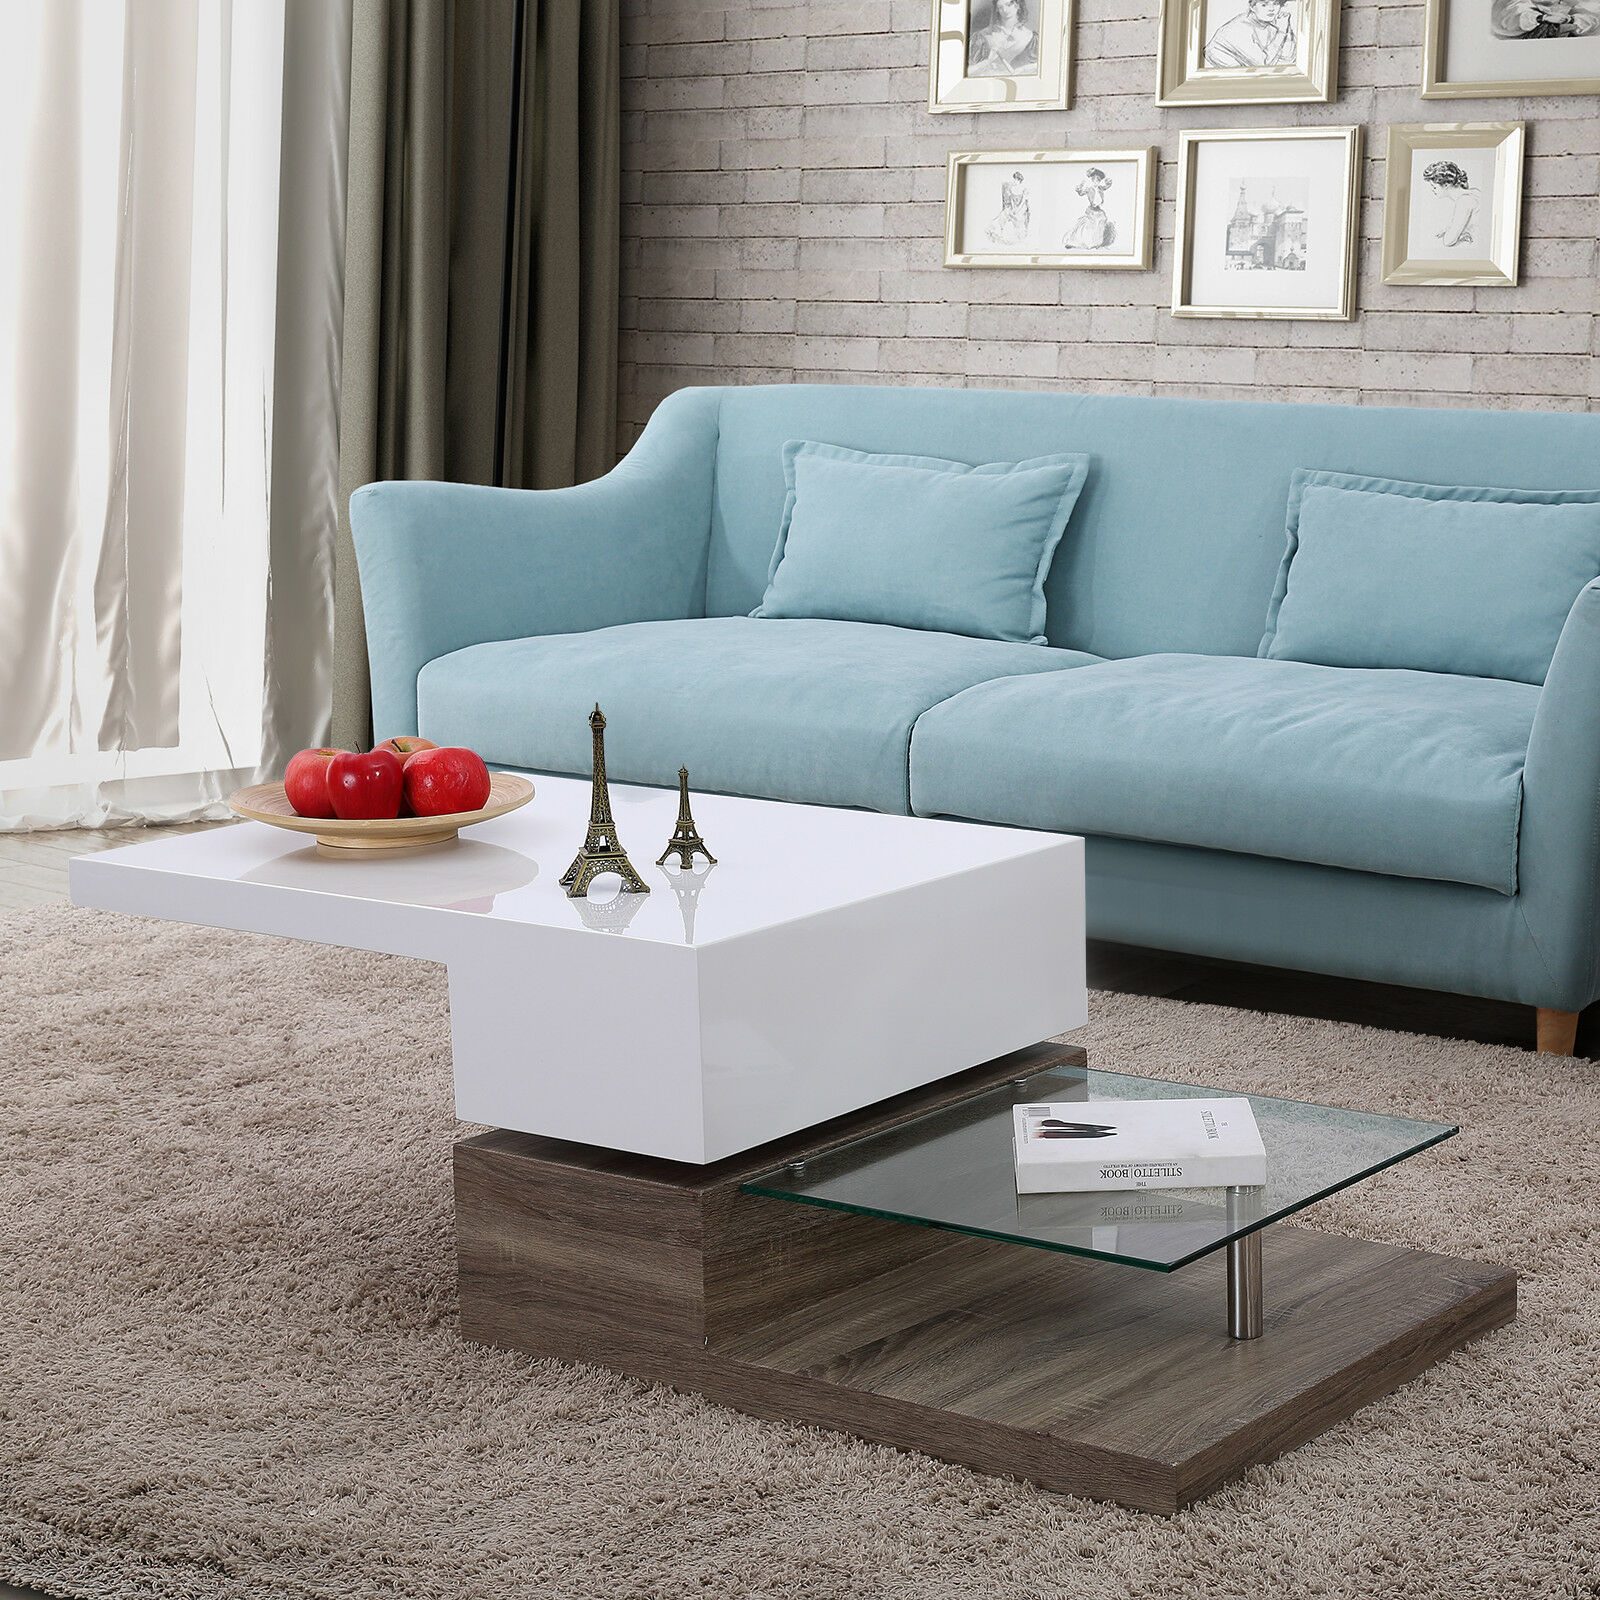 Oval Rotating Coffee Table: Best Home Renovation 2019 By